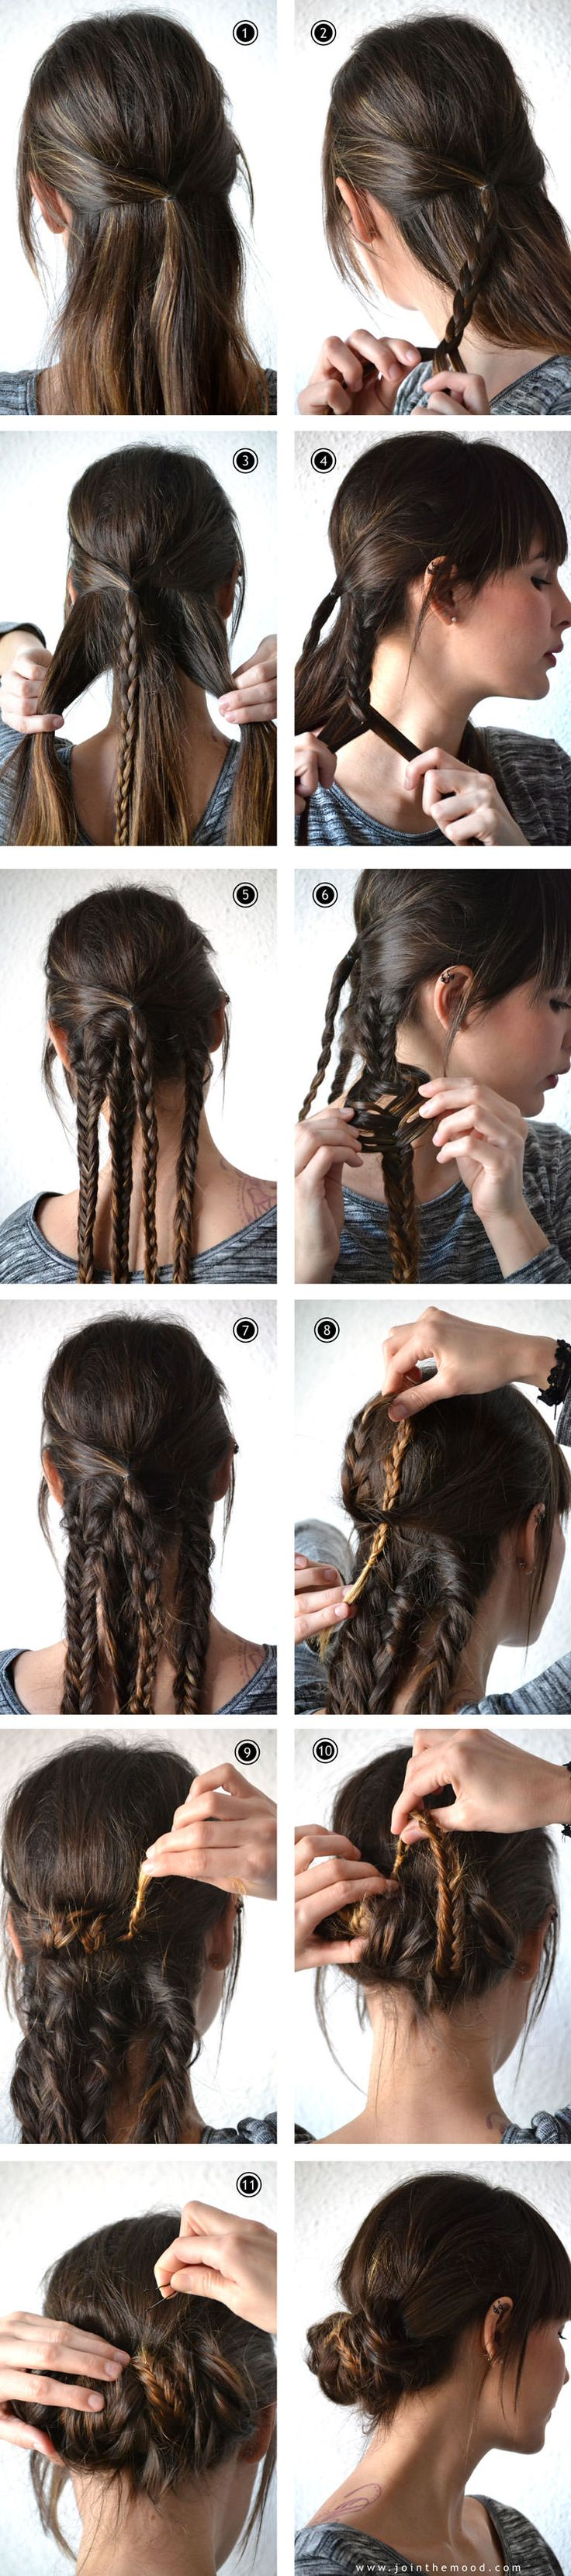 Wrapped Braided Updo - I would probably have to make more than 4 braids though with my thick hair.